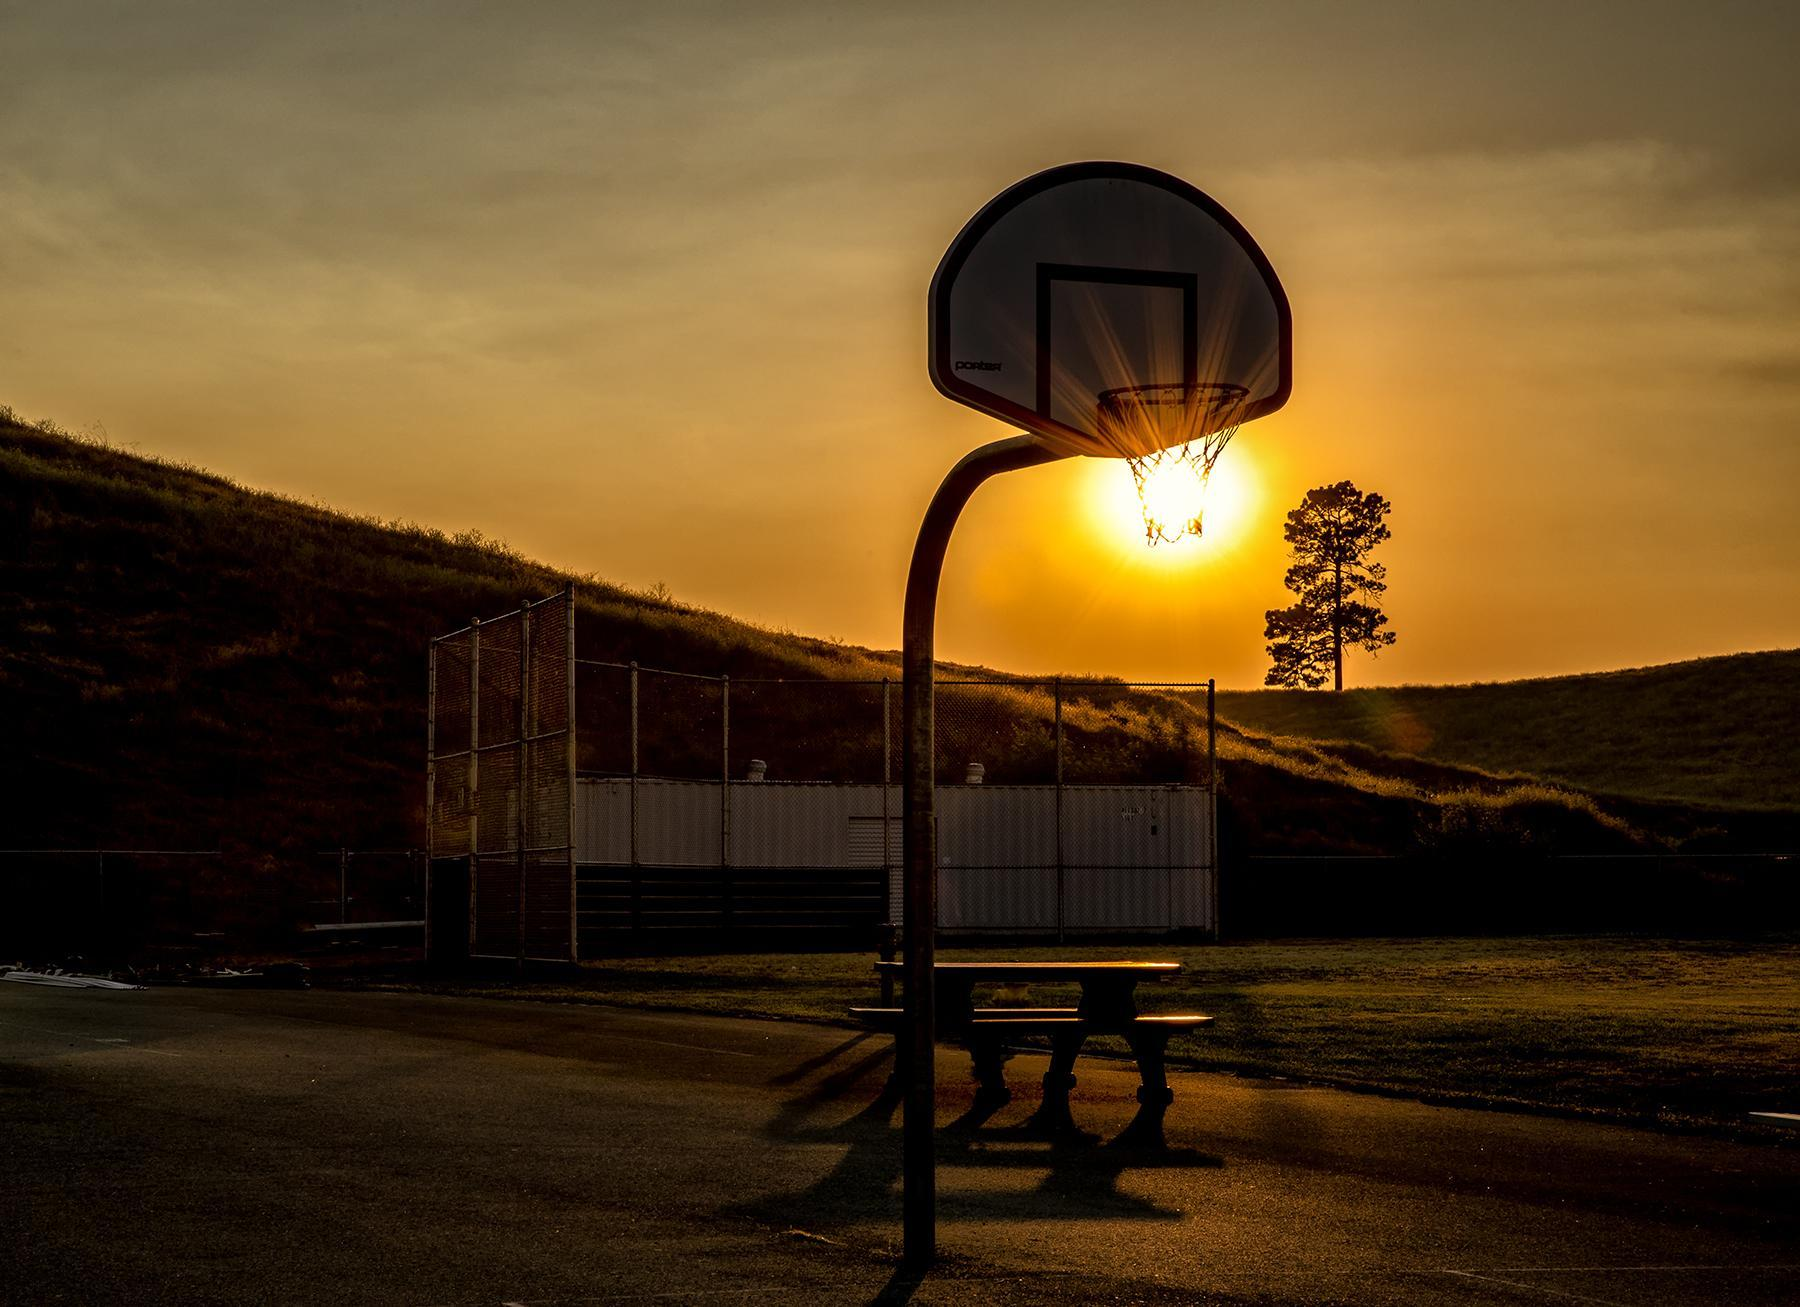 Sun Through Basketball Hoop